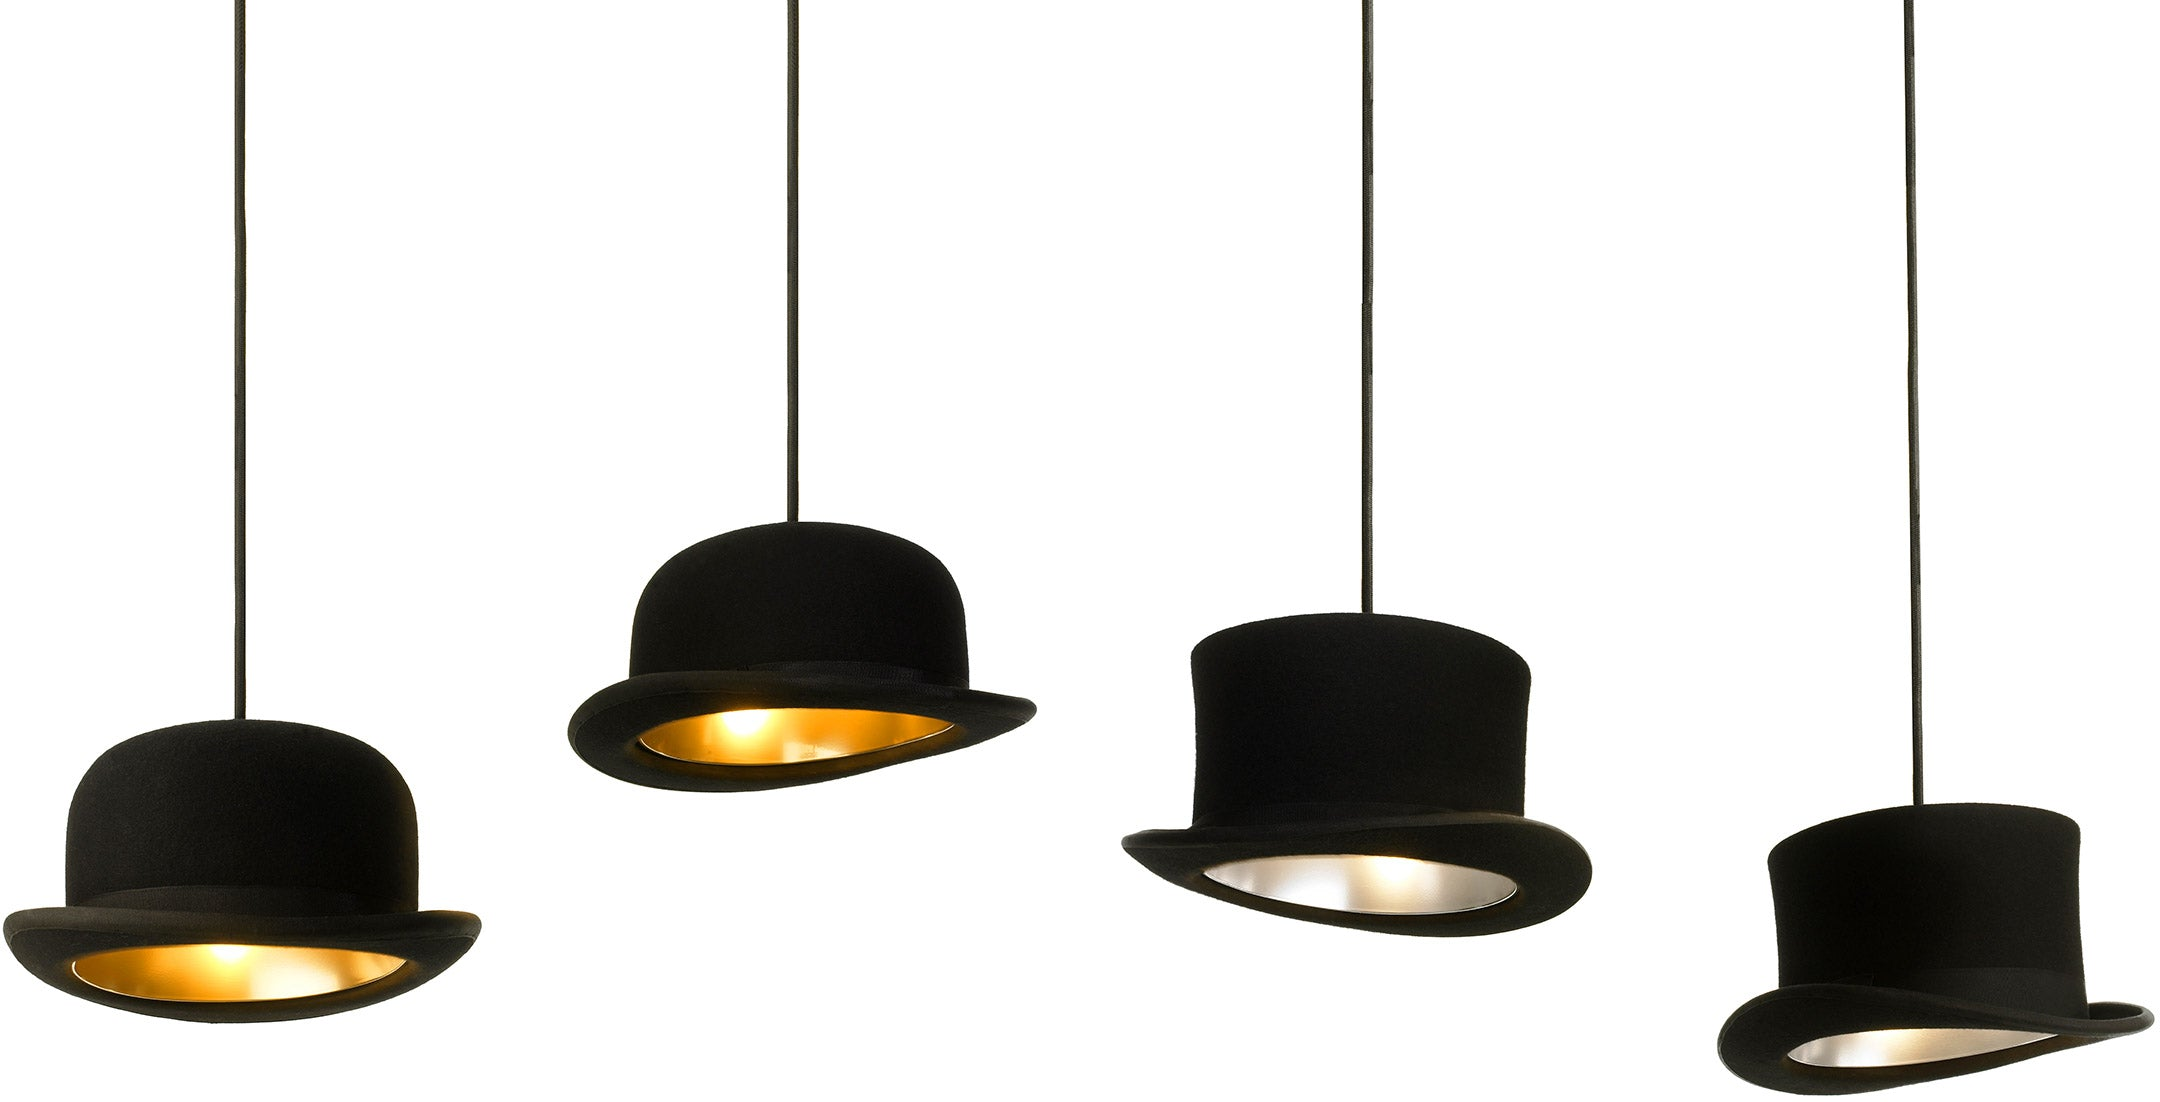 The Jeeves and Wooster range available from funkylampshades.com